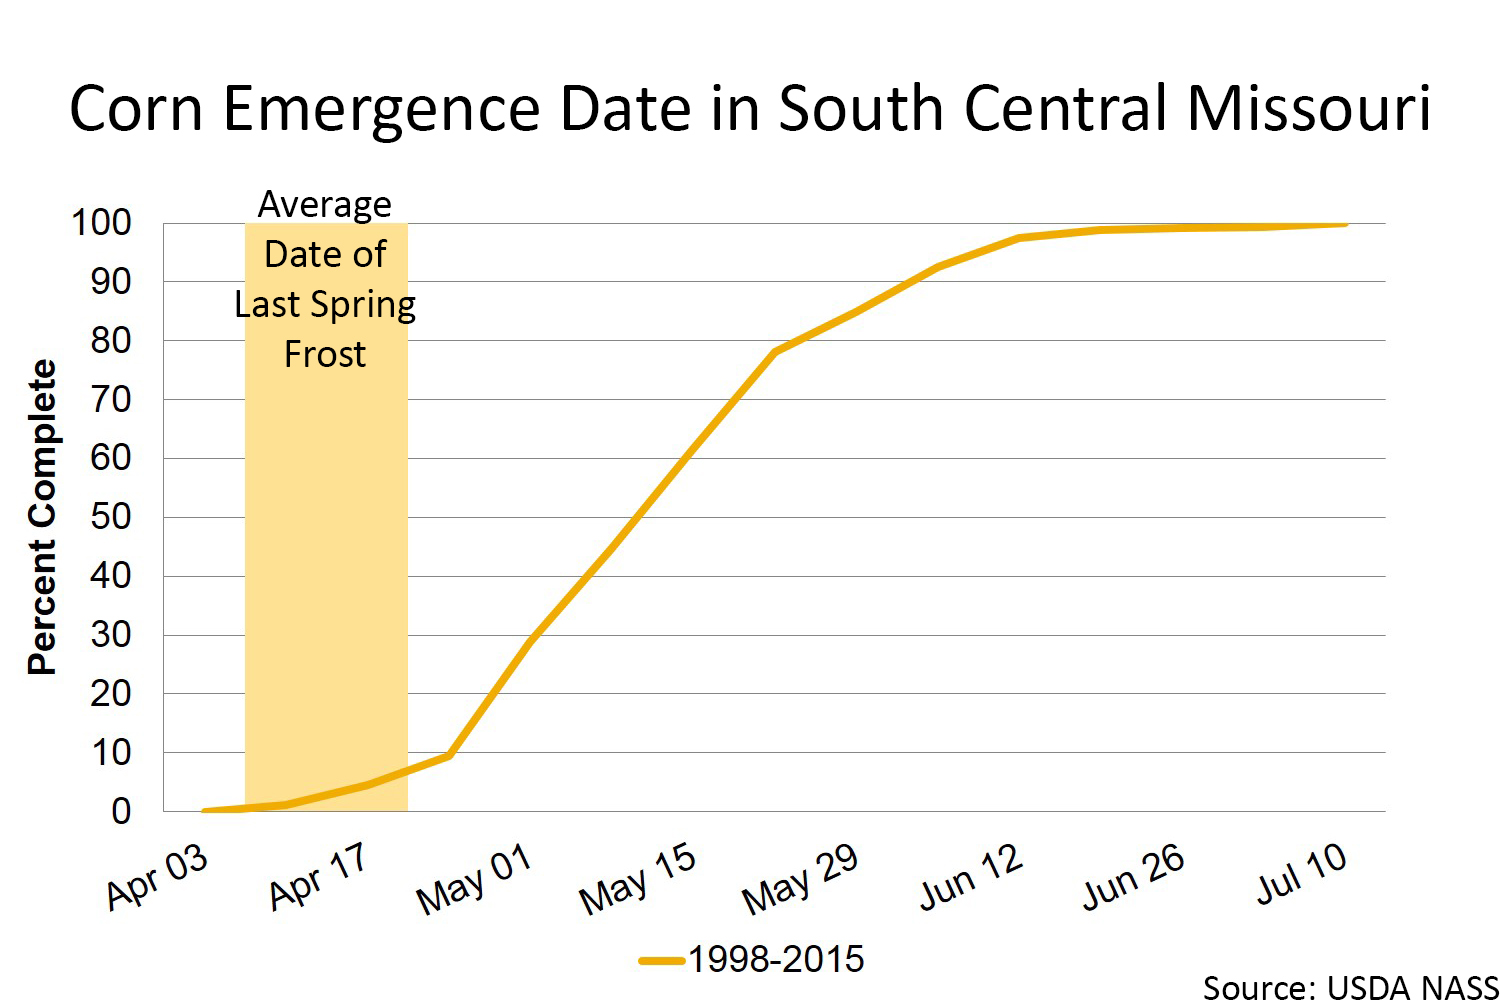 Corn emergence date in South Central Missouri chart